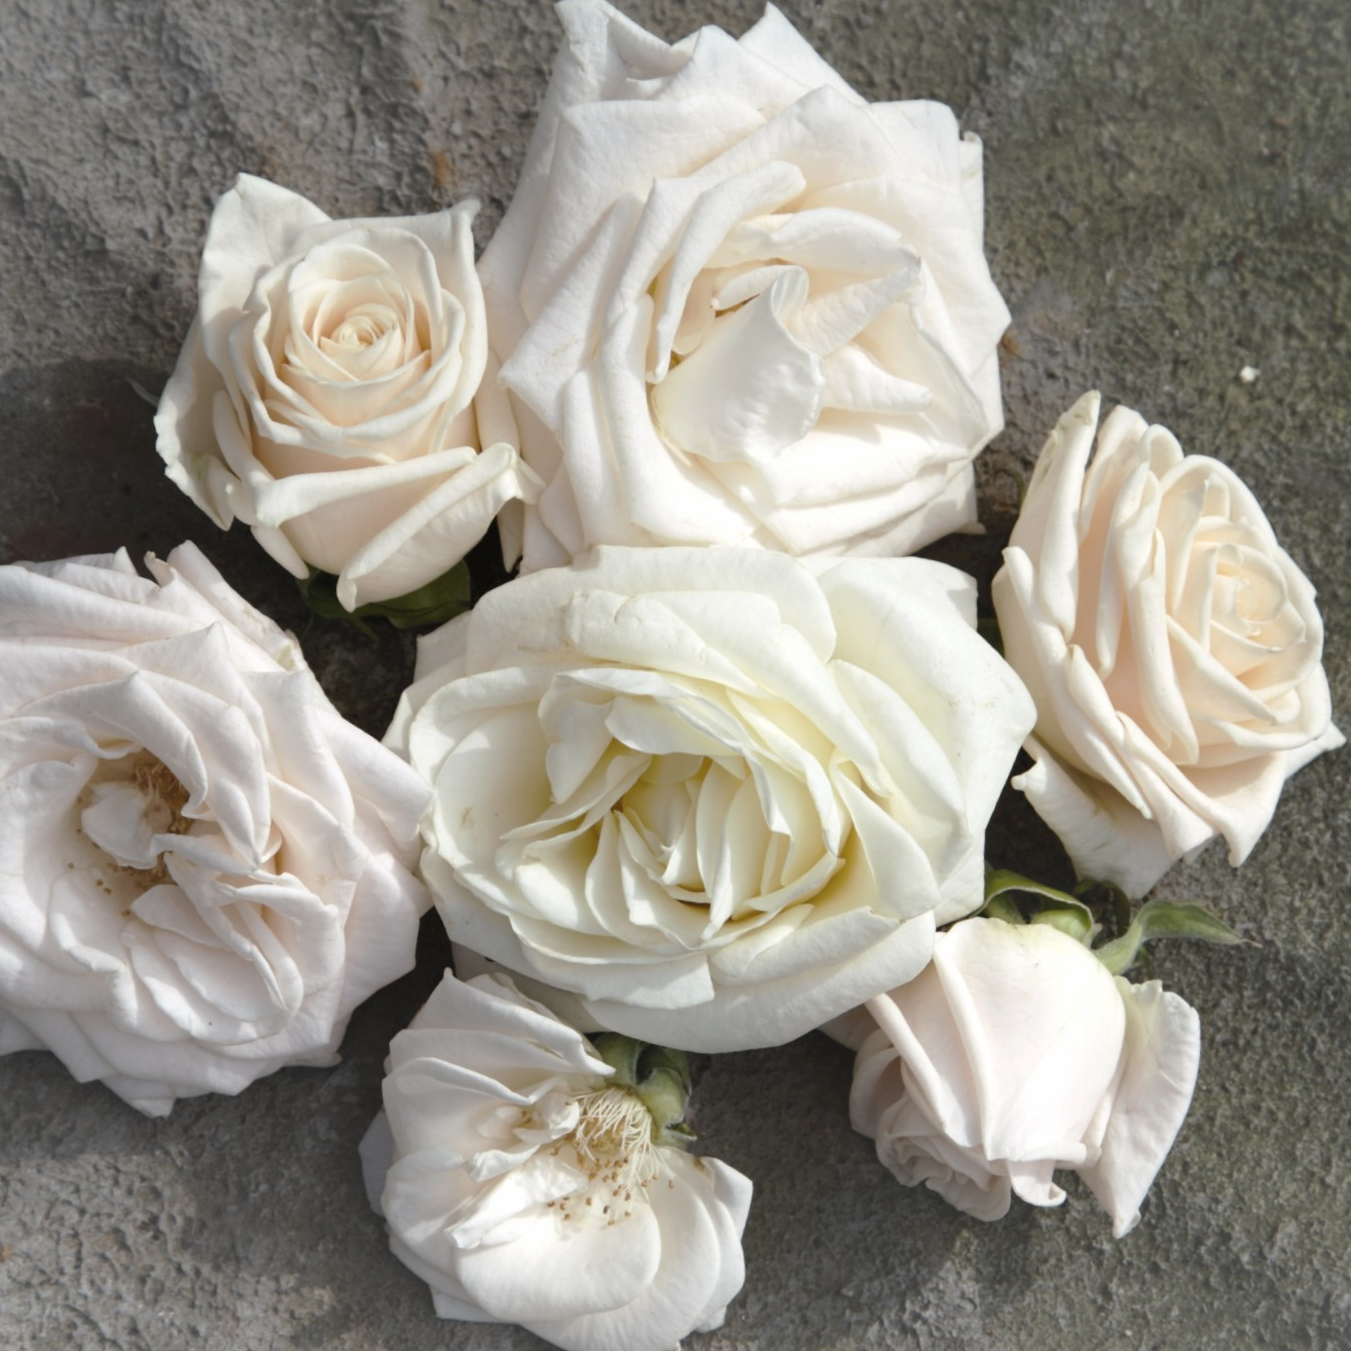 all images by Flowers and Company